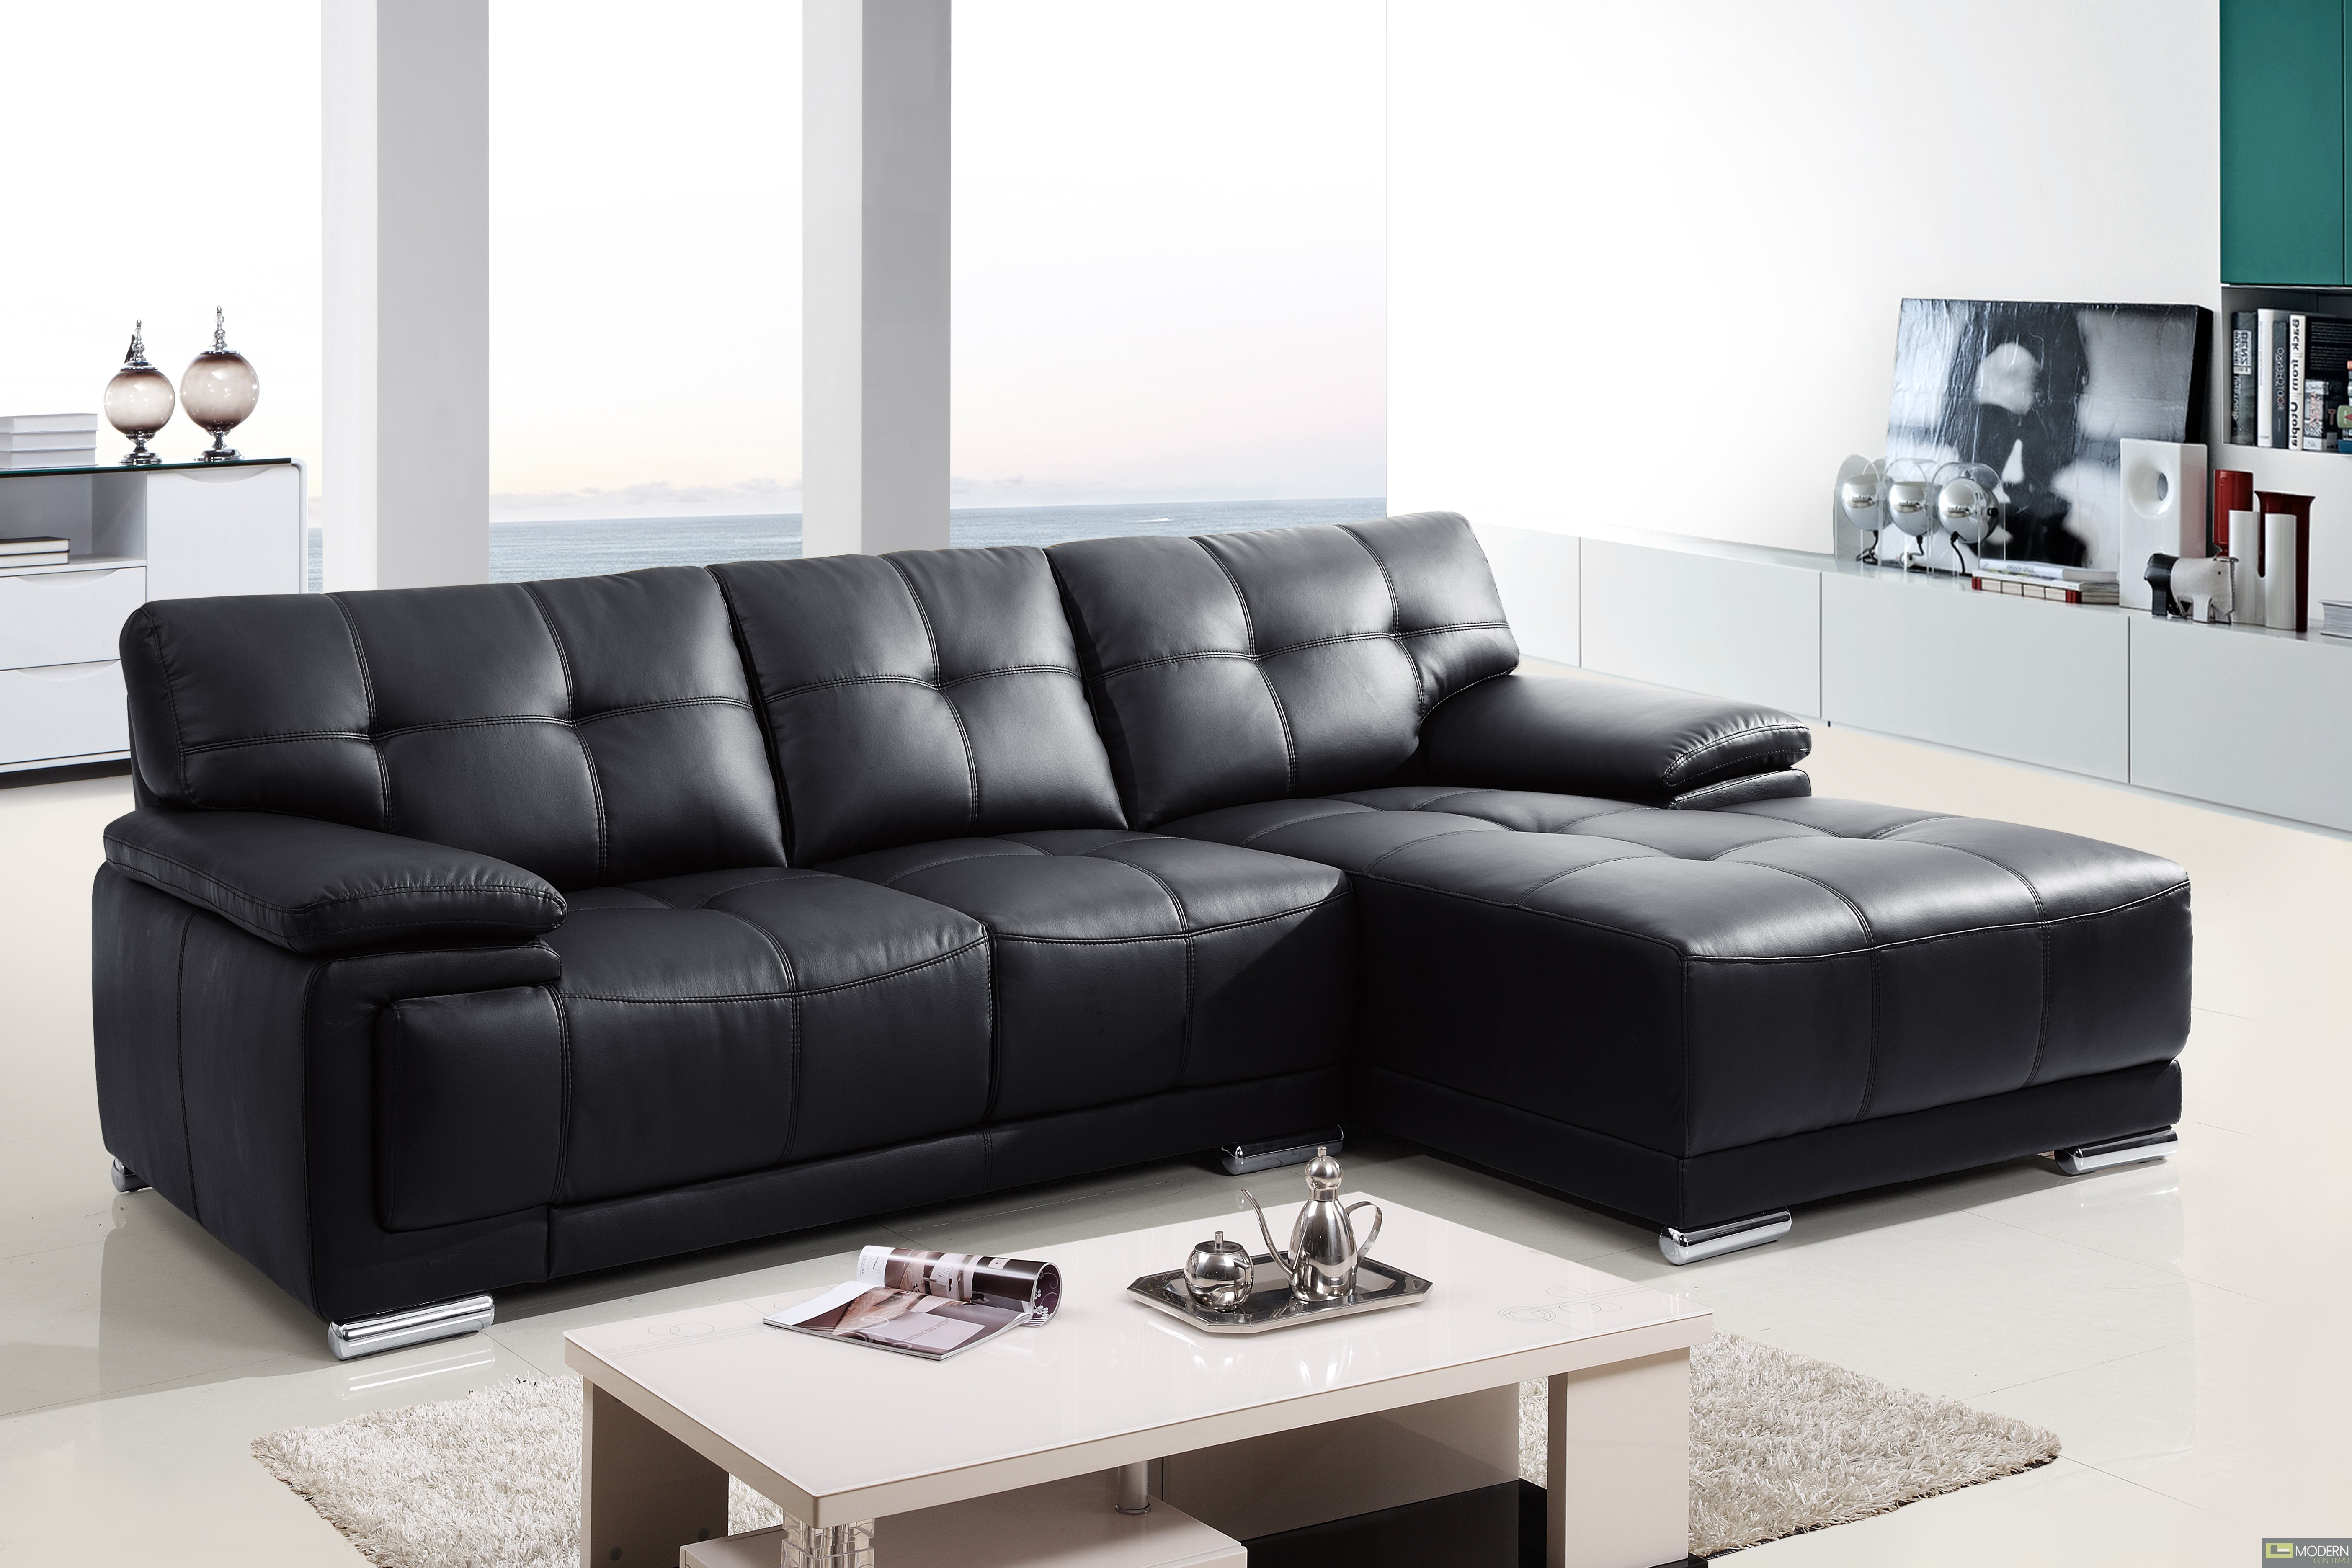 2pc modern leather sectional sofa living room couch set tbqs8863 4. Black Bedroom Furniture Sets. Home Design Ideas